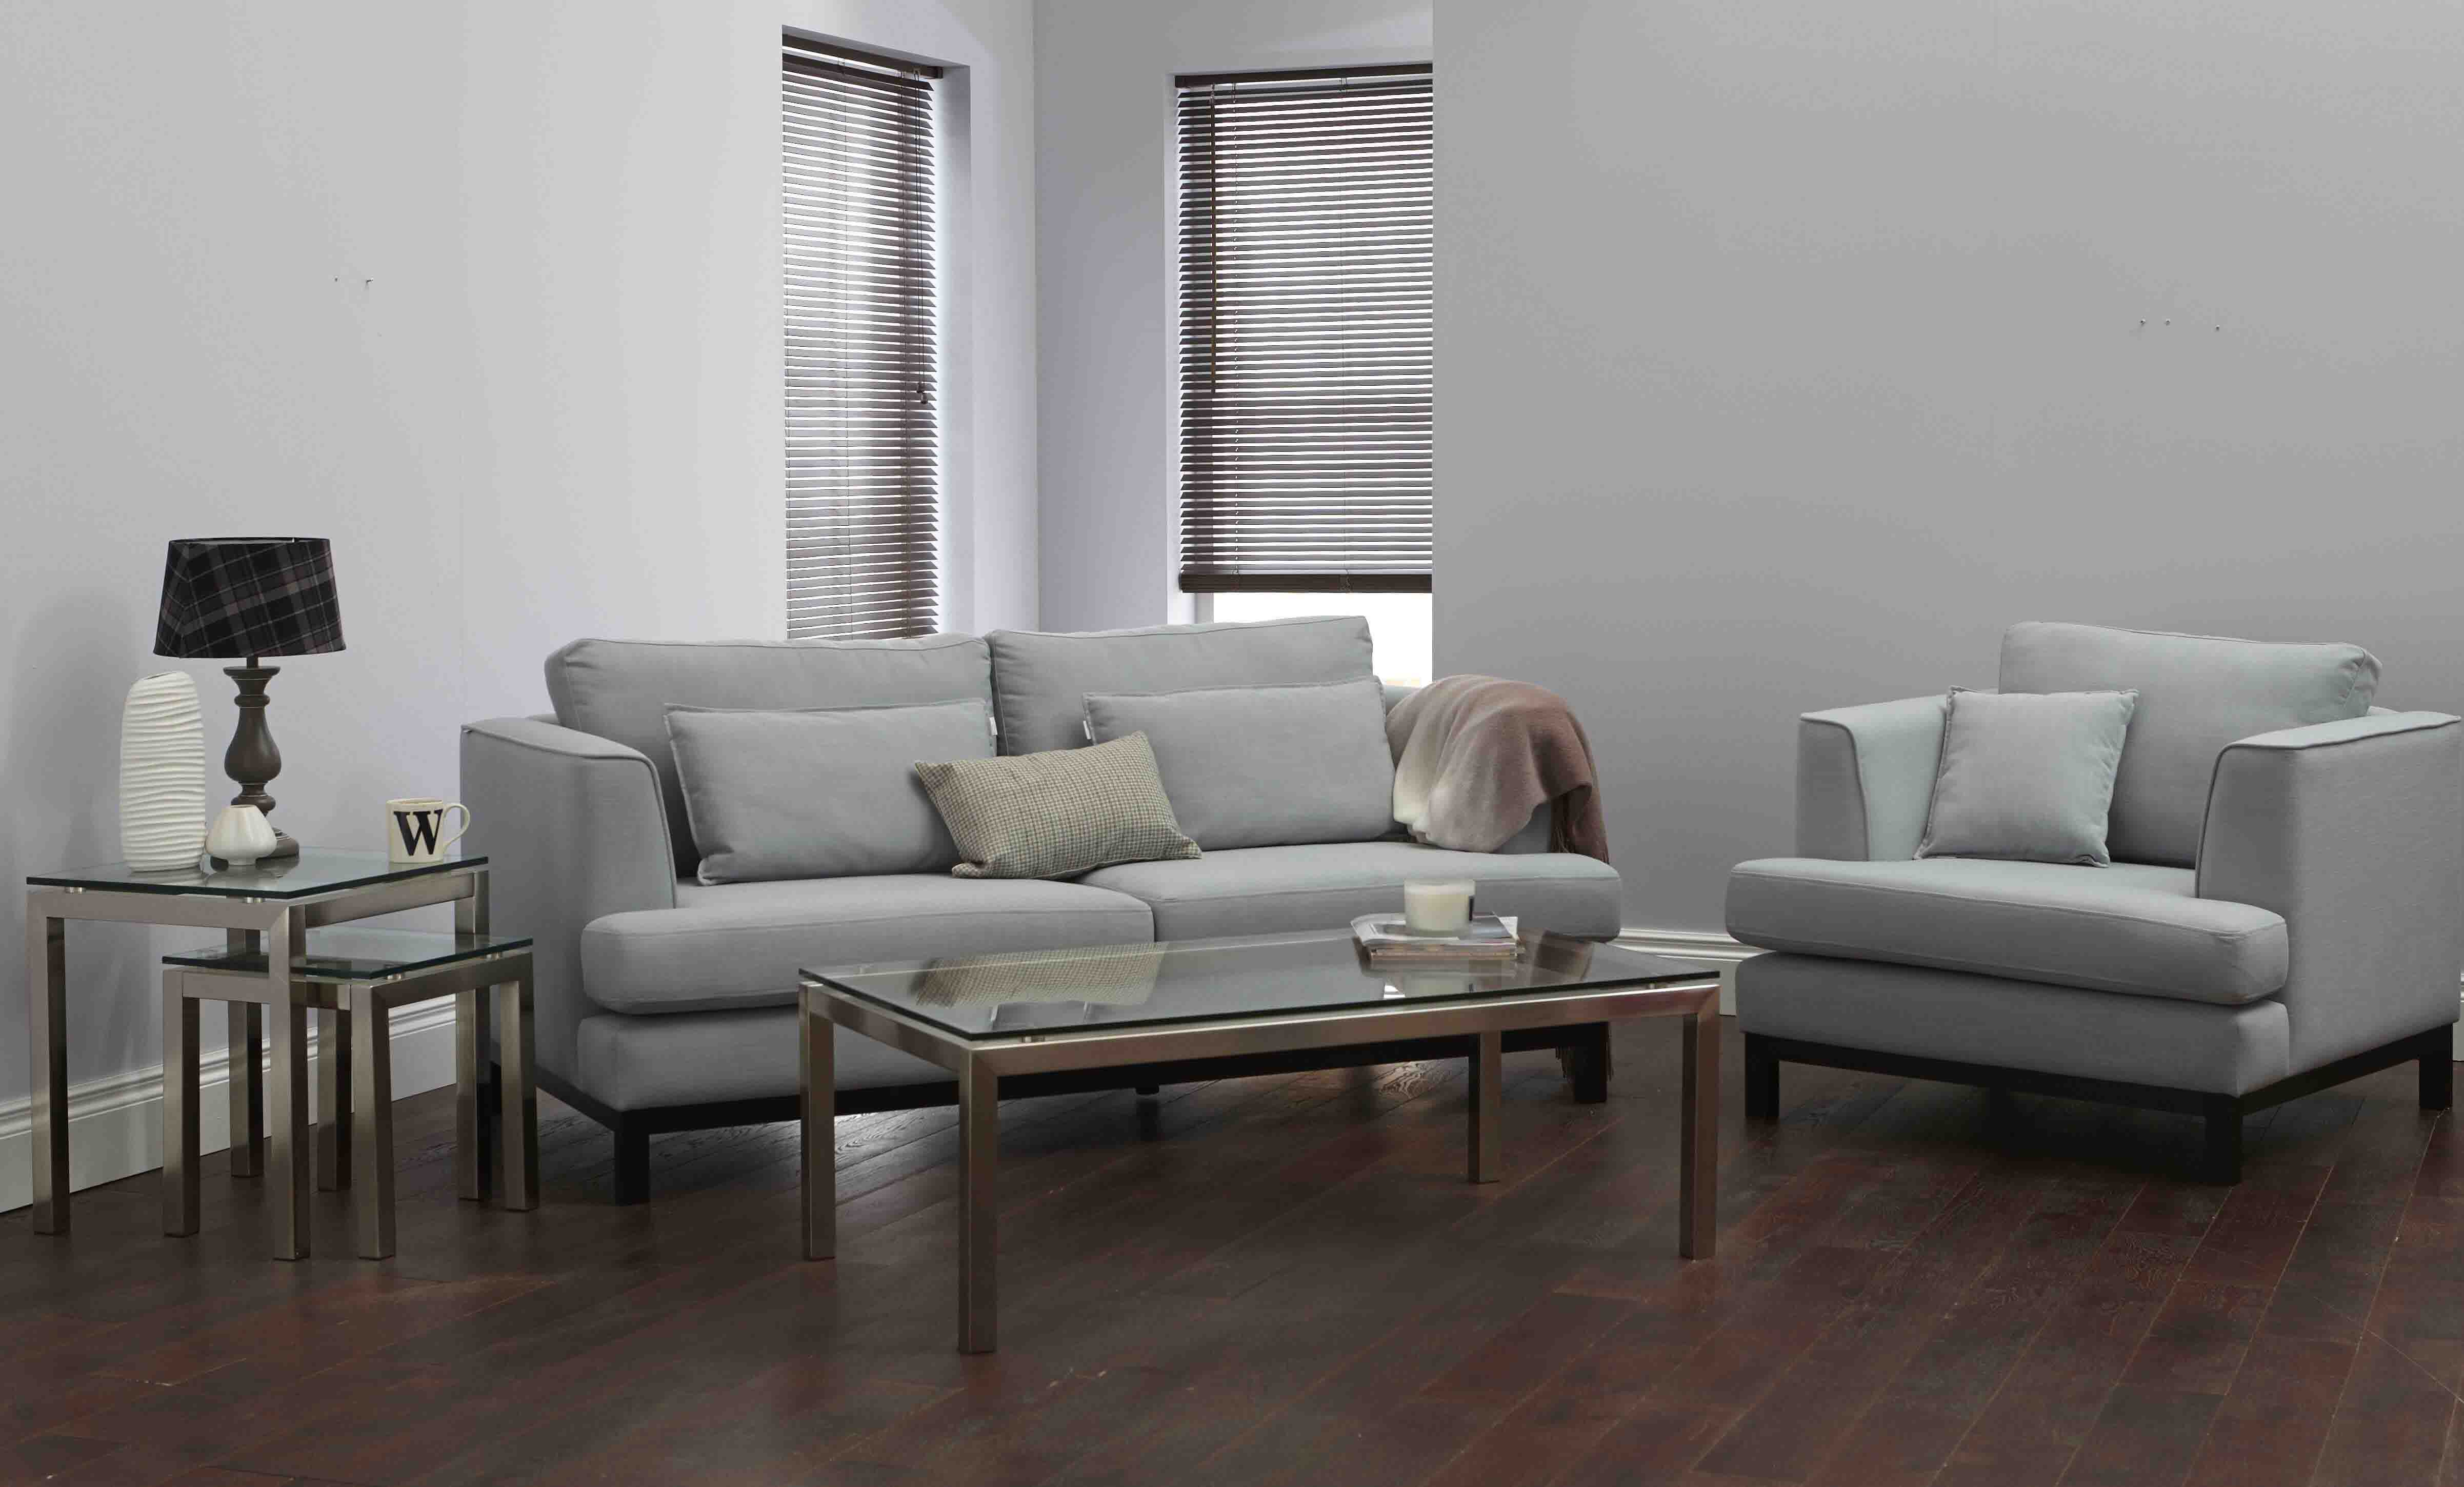 ELEGANT AND MINIMALISTIC SOFA